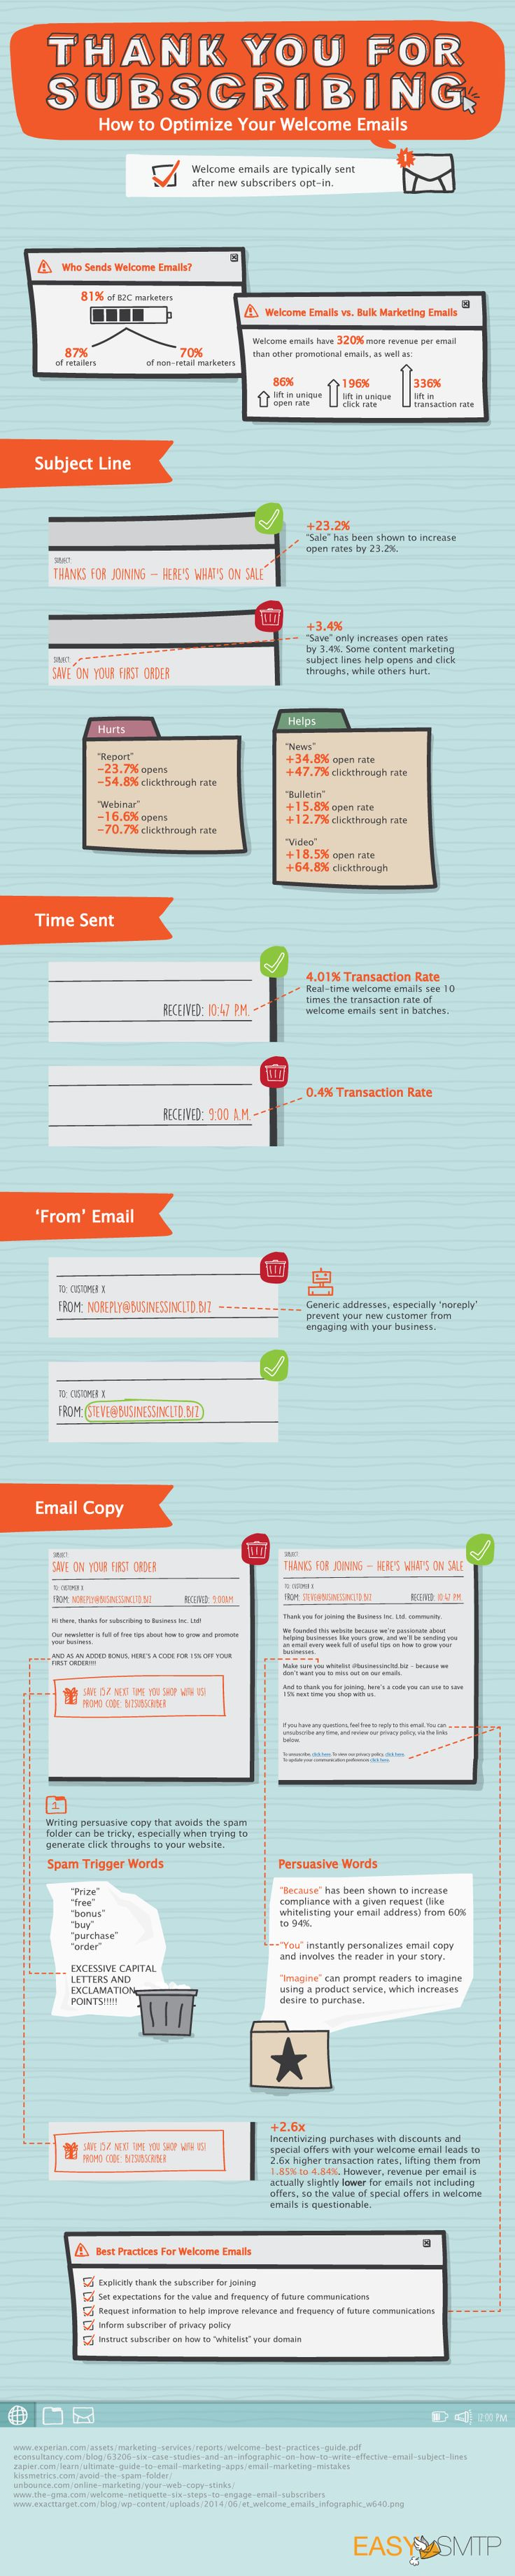 How to Optimize Your Welcome Emails | #infographic via @HubSpot